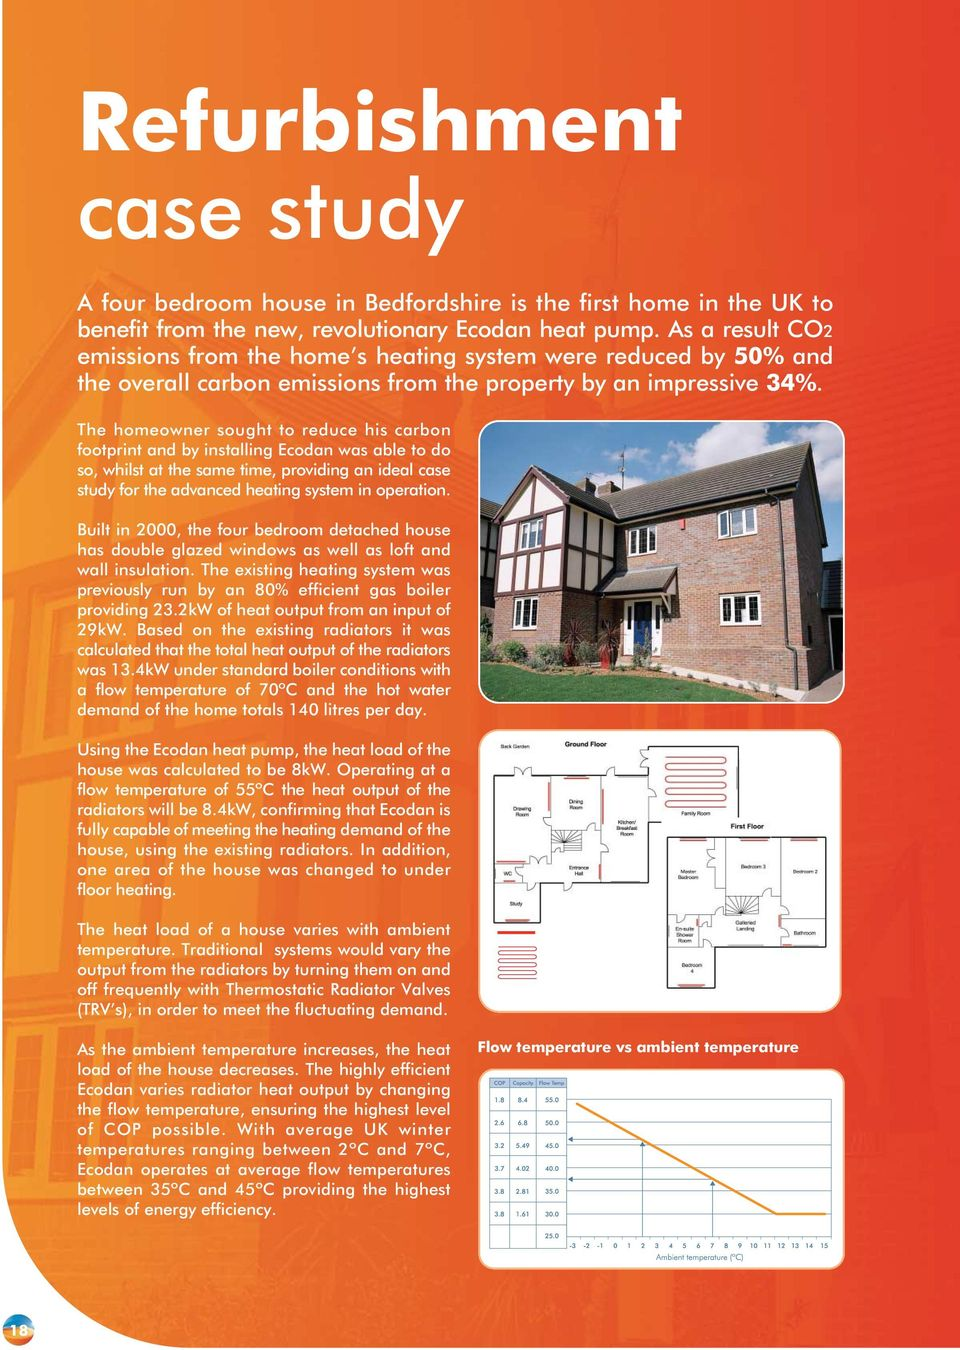 The homeowner sought to reduce his carbon footprint and by installing Ecodan was able to do so, whilst at the same time, providing an ideal case study for the advanced heating system in operation.